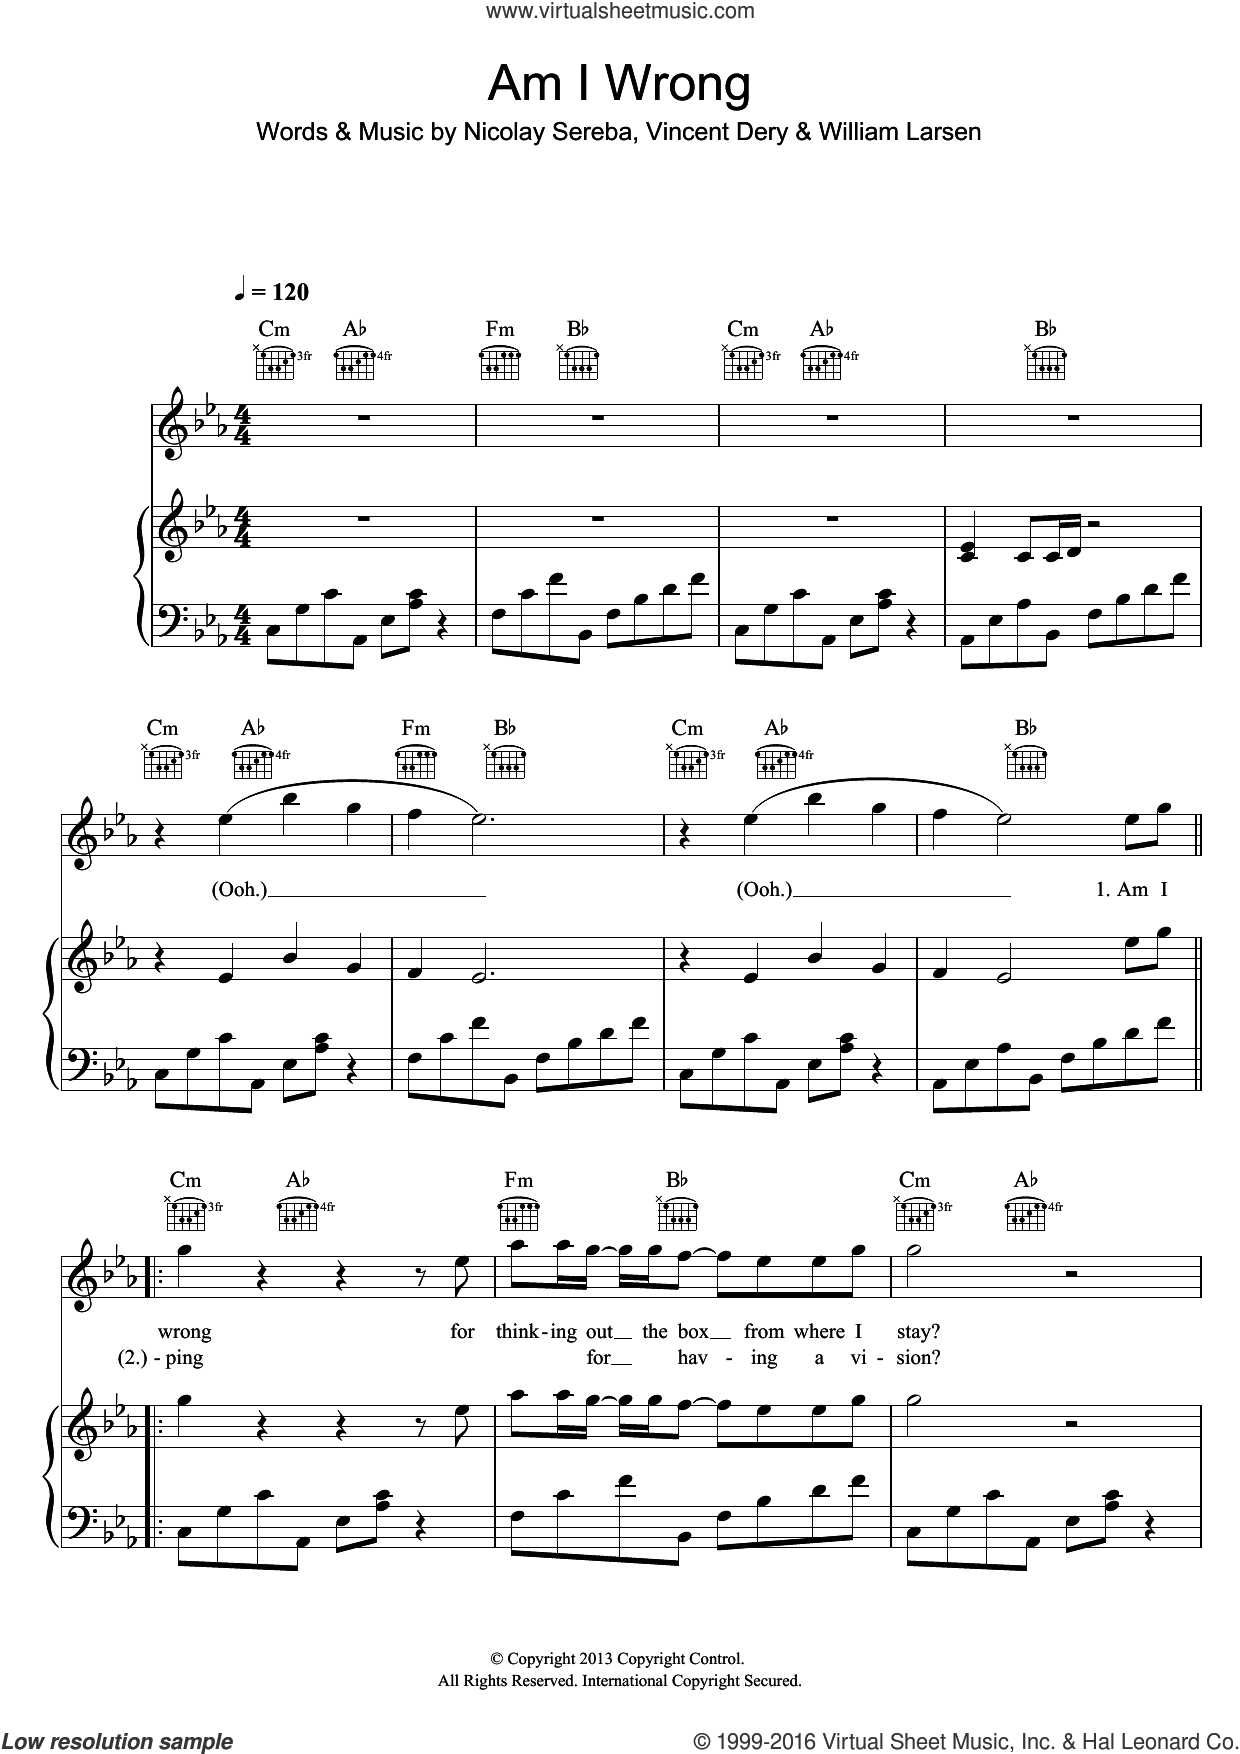 Am I Wrong sheet music for voice, piano or guitar by Envy, Nicolay Sereba, Vincent Dery and William Larsen. Score Image Preview.